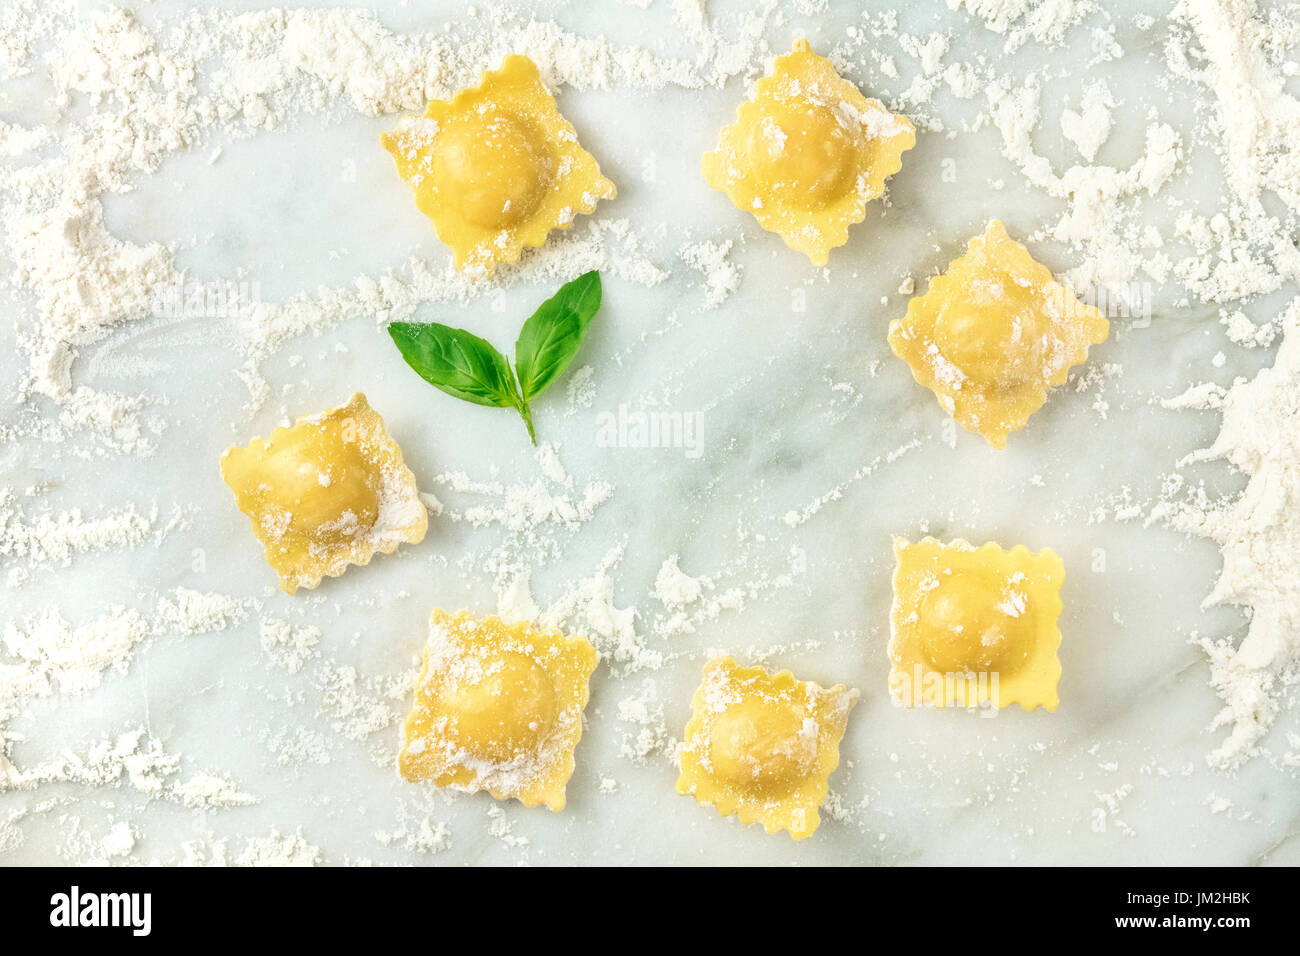 Overhead photo of ravioli with flour and basil leaves - Stock Image